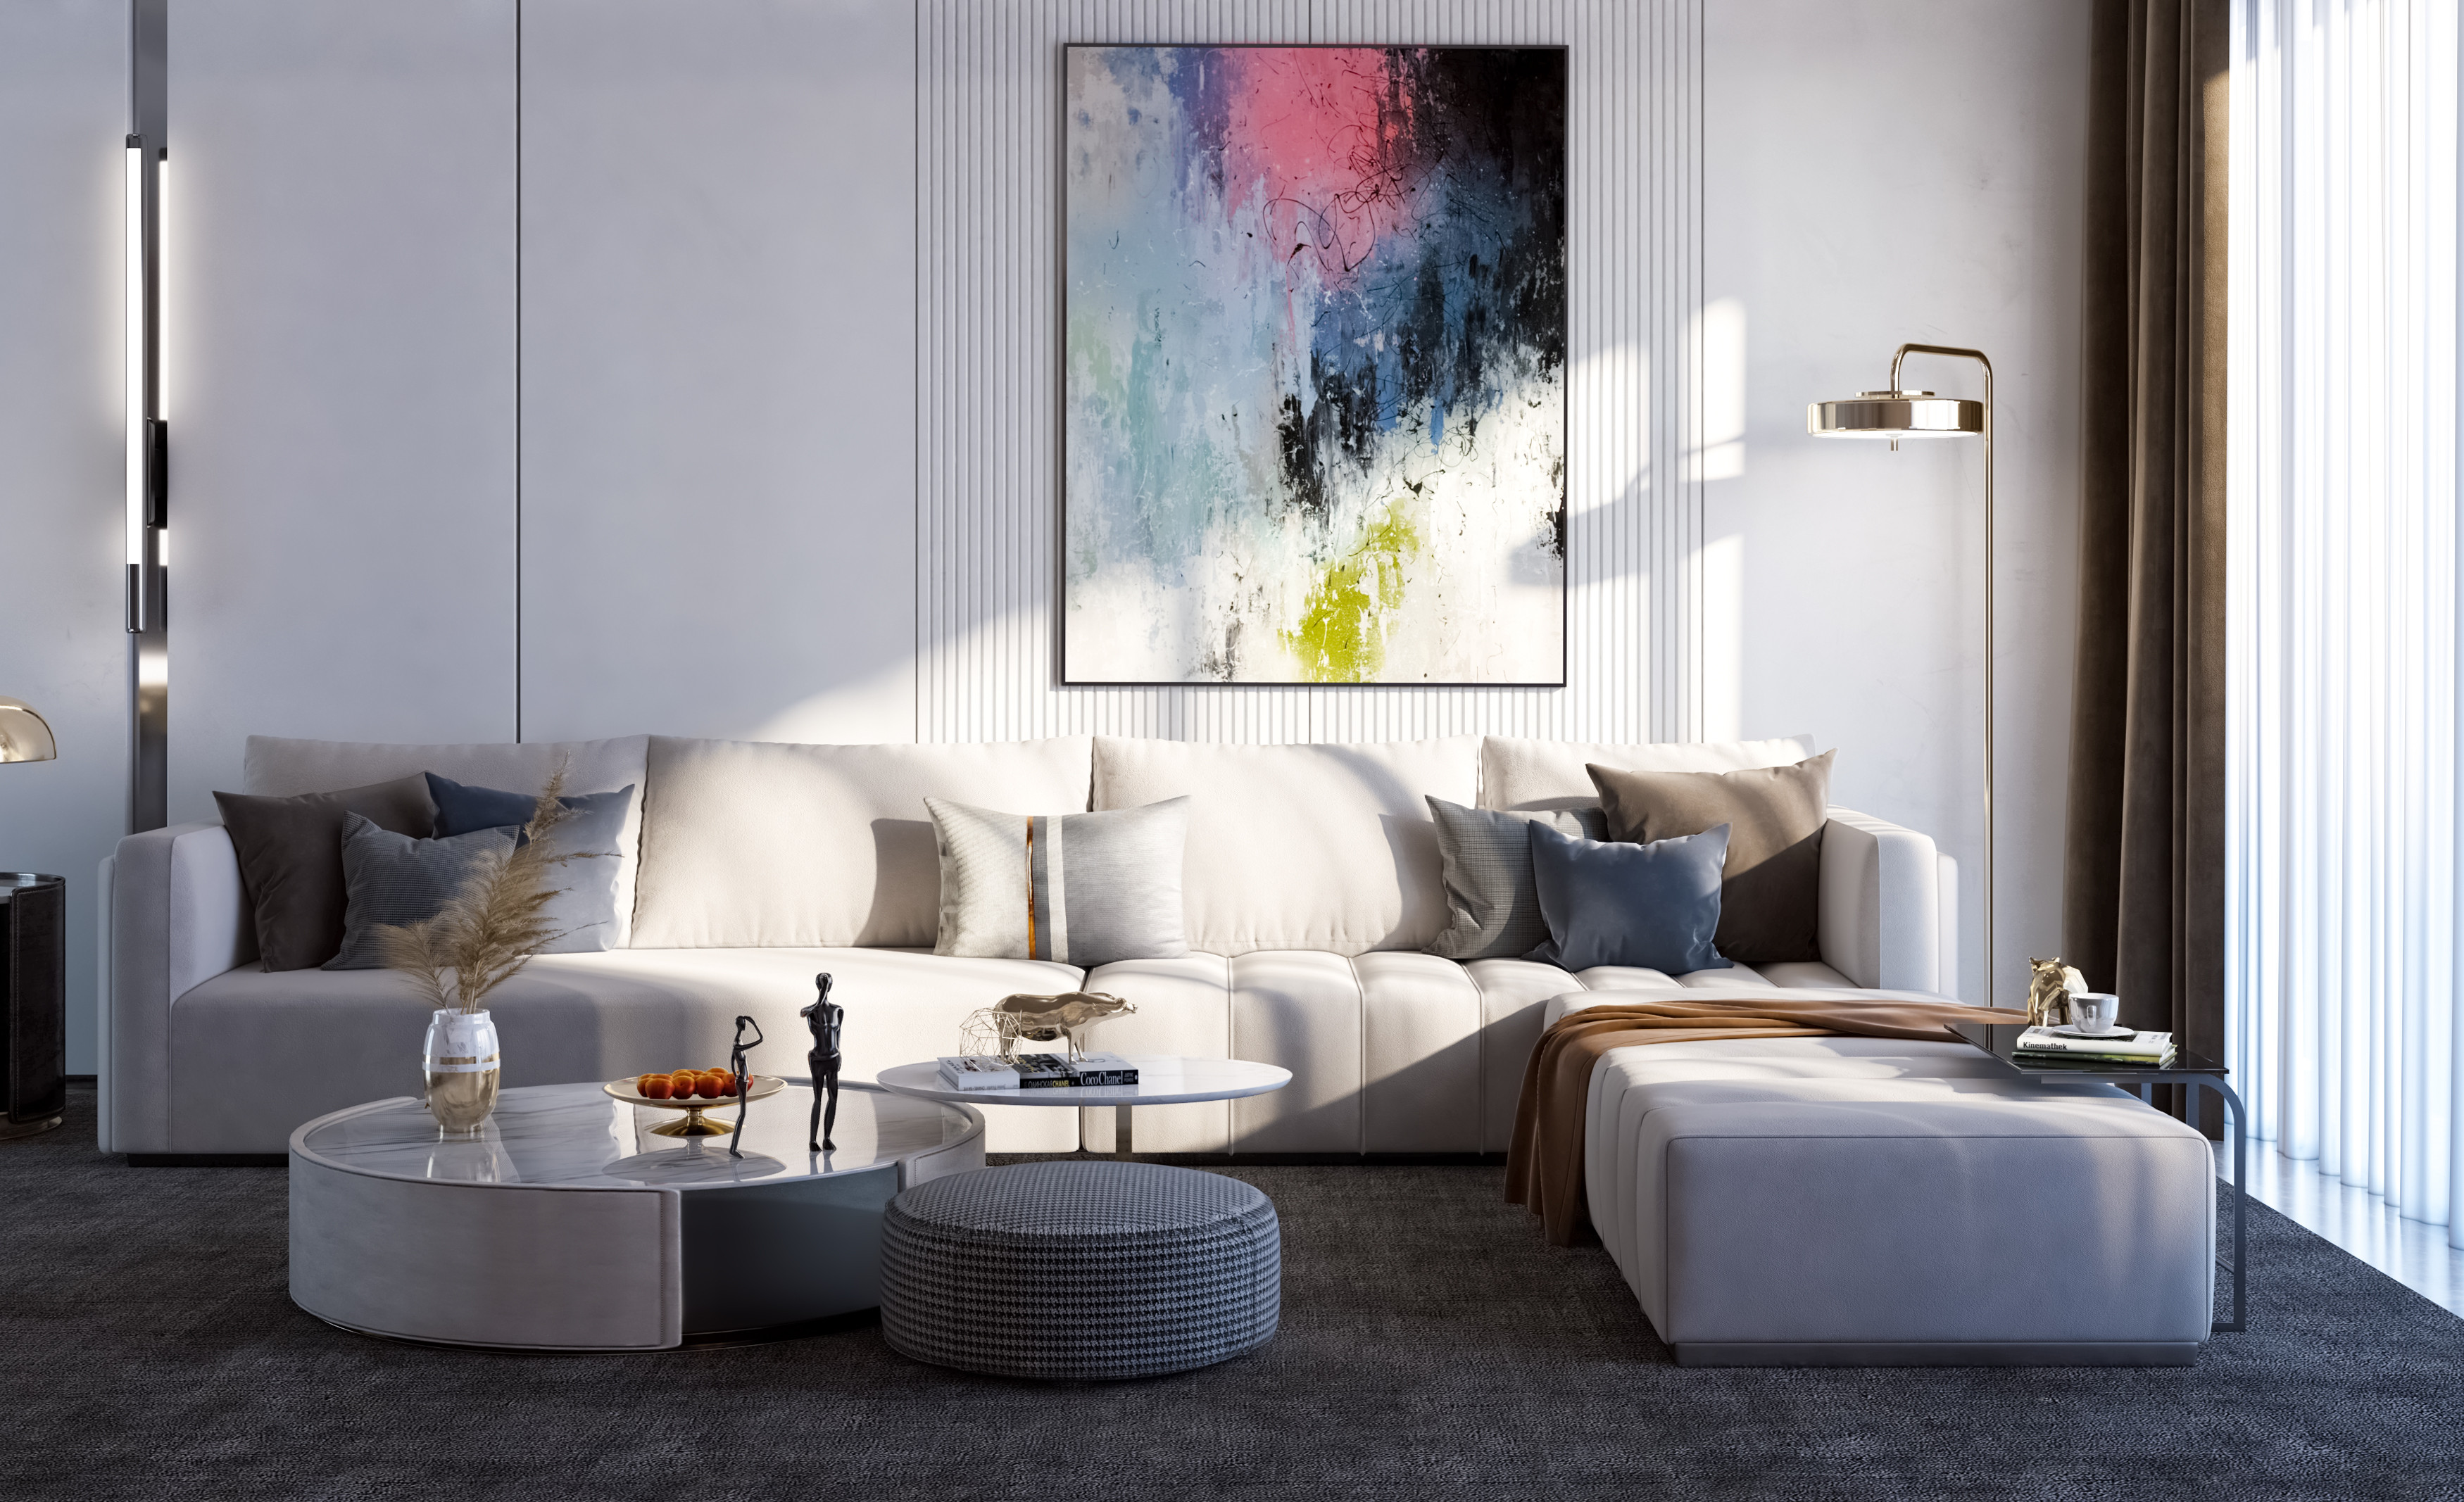 Modern Living Room  3ds Max V-Ray Photoshop Asset: 3dBrute Materials and Lighting Rendering Lente Scura 5SRW - Learning V-Ray Method